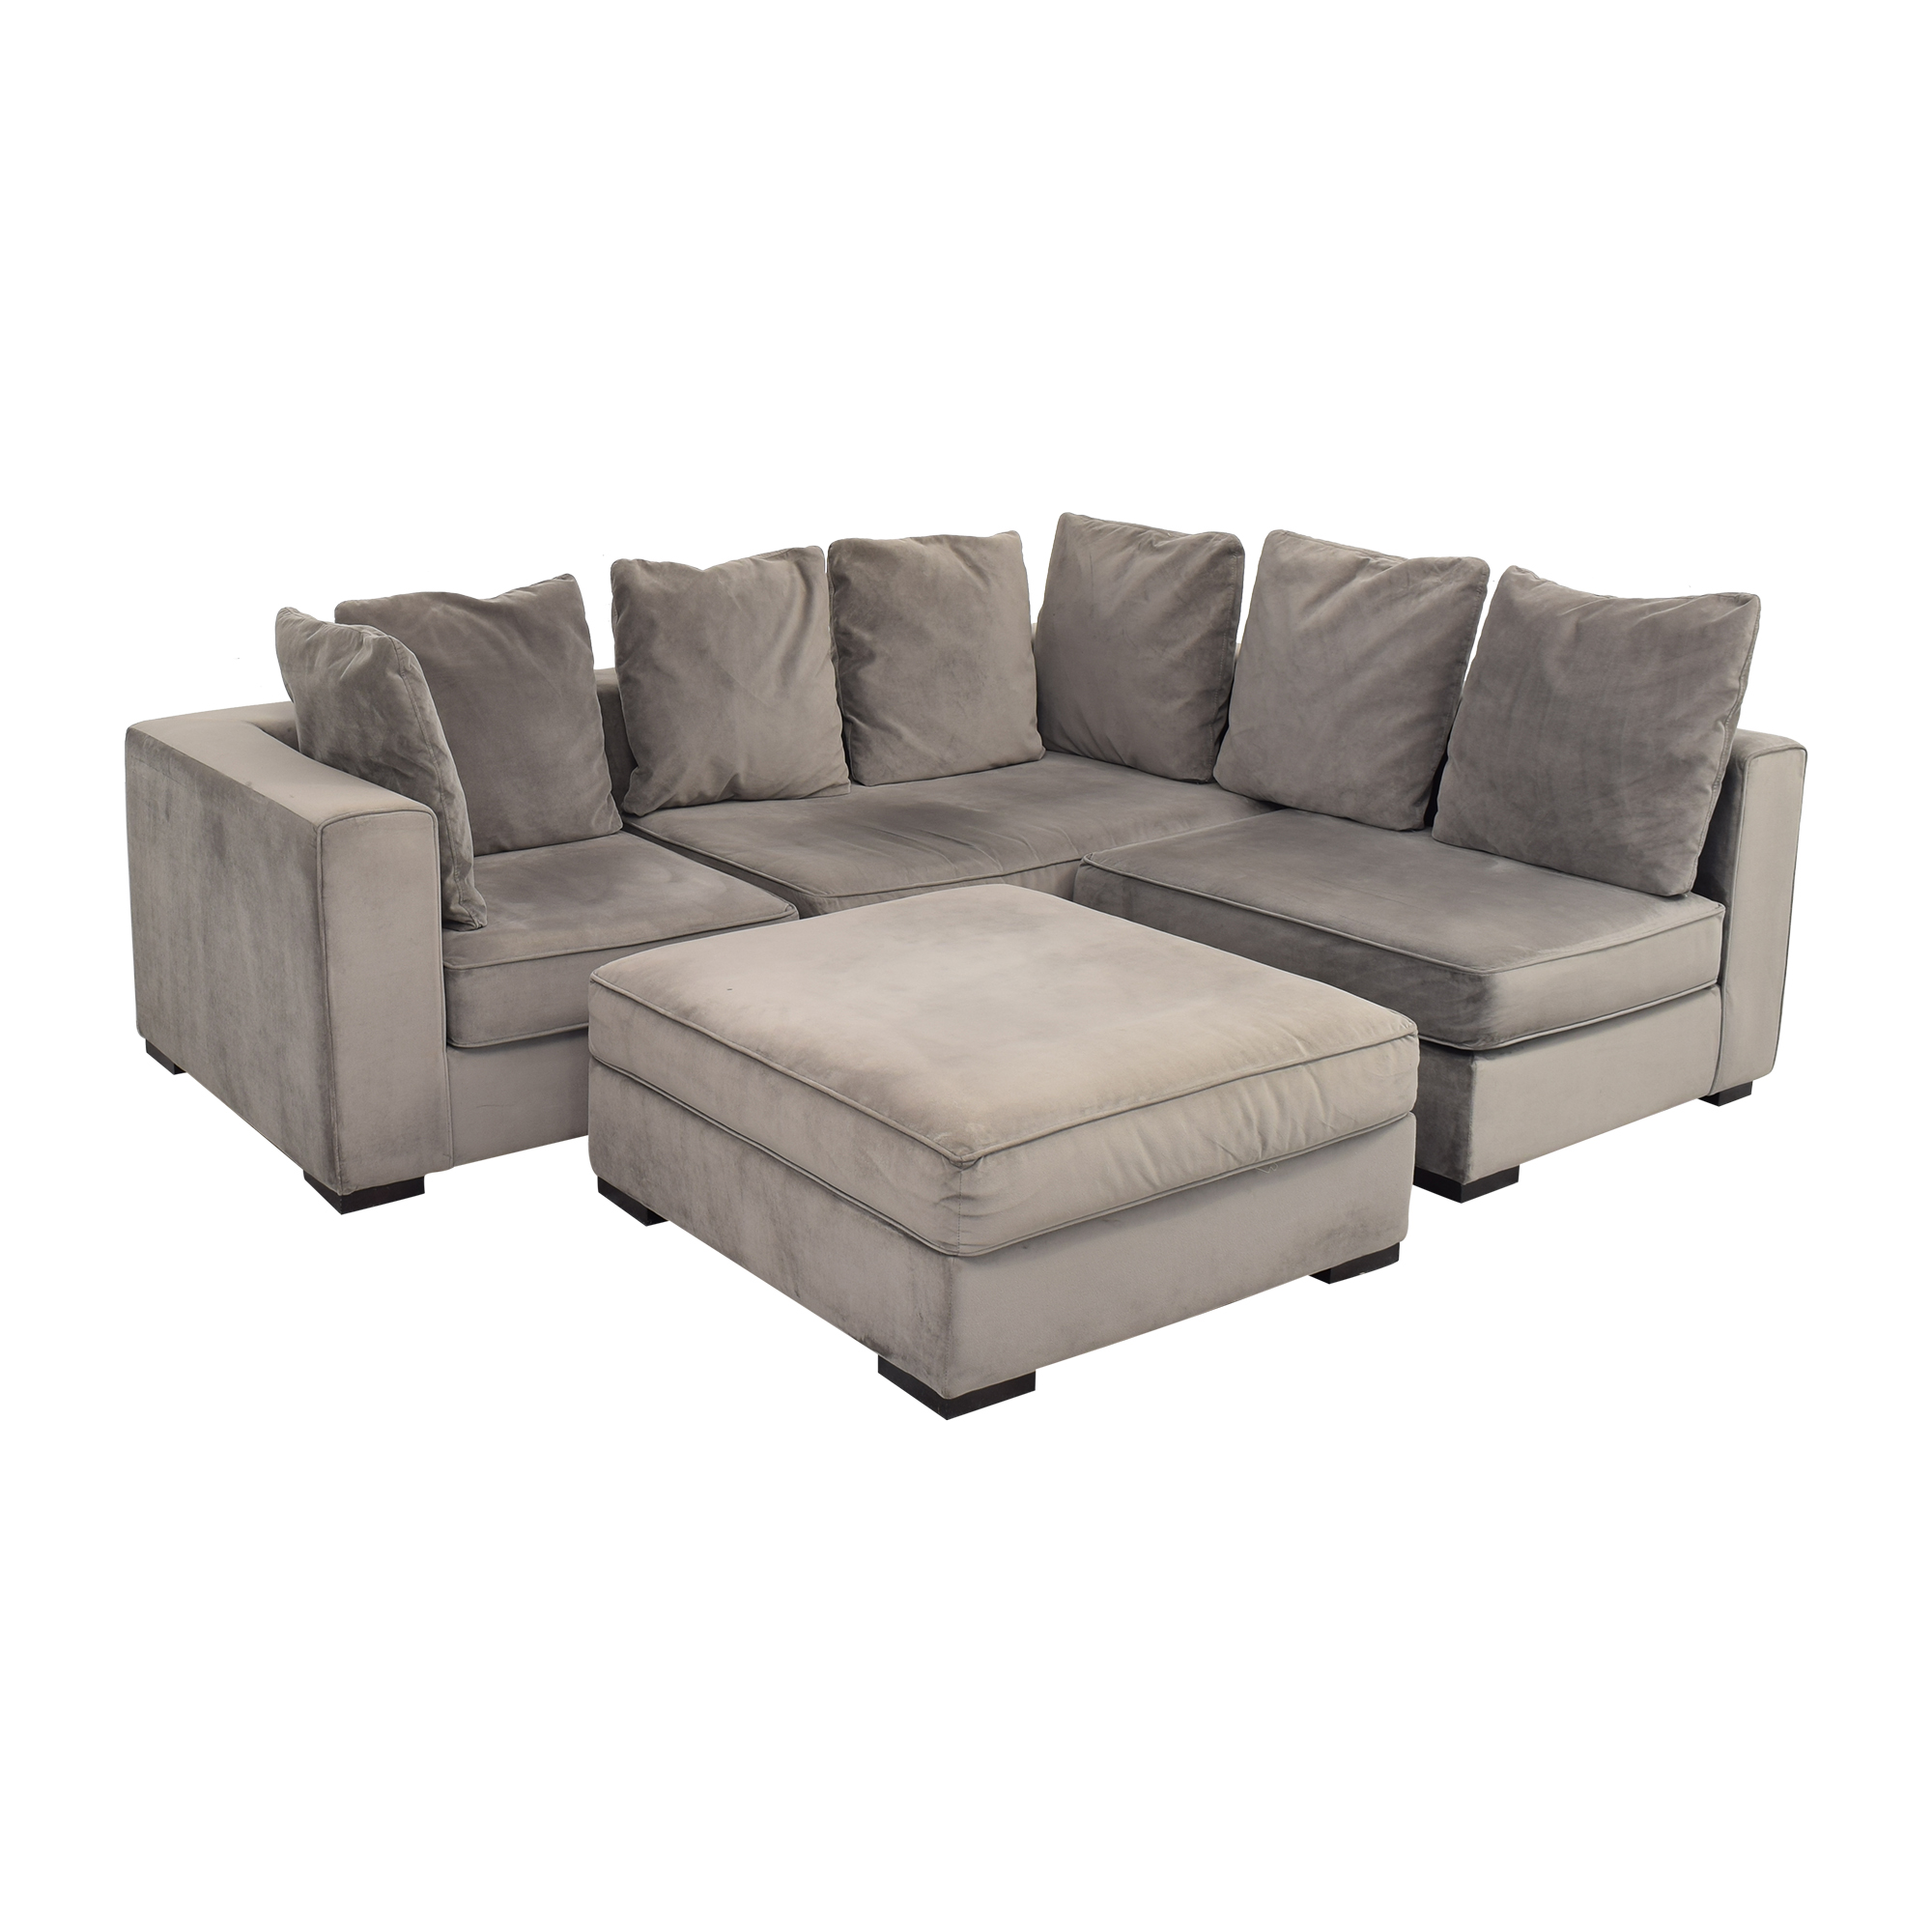 West Elm West Elm 3-Piece Sectional with Ottoman Sofas